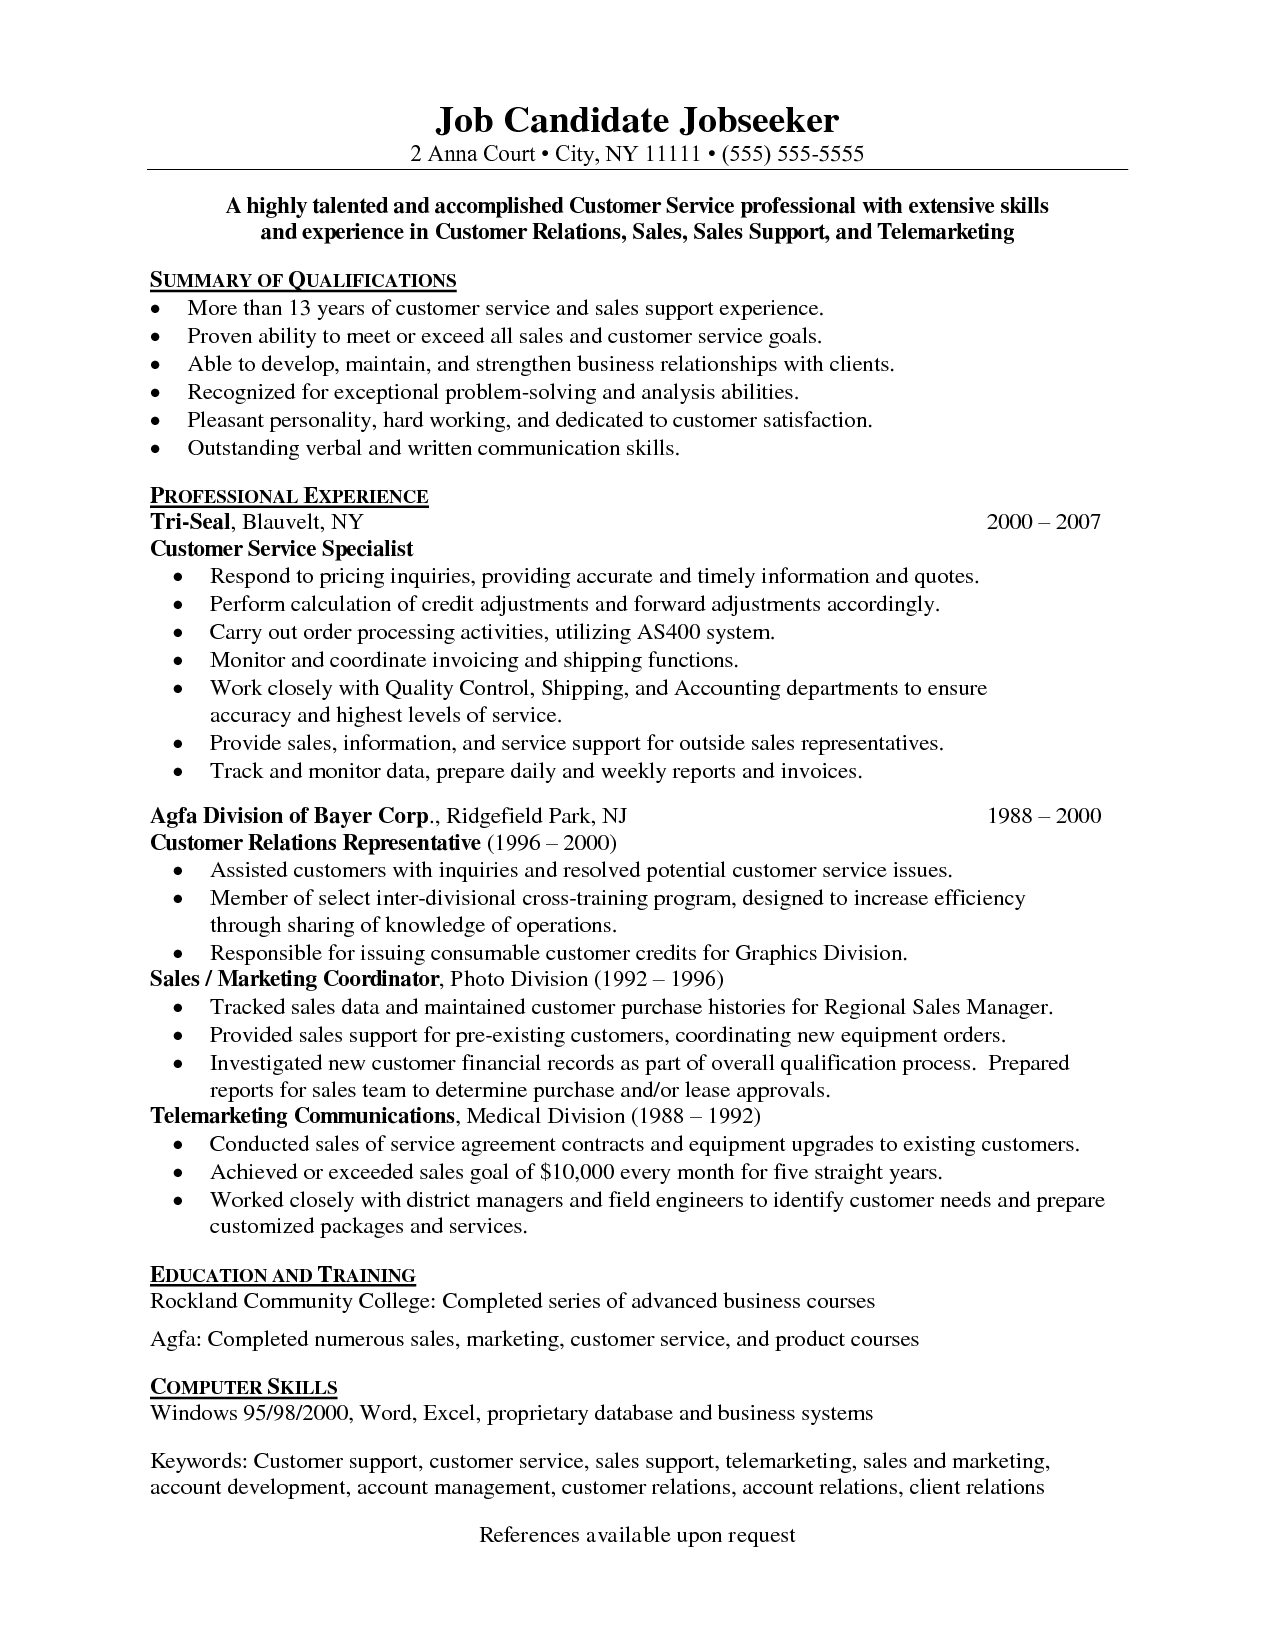 Opposenewapstandardsus  Mesmerizing Customer Service Resume Format  Roiinvestingcom With Lovely Customer Service Resume Format  With Agreeable Rn Resume Templates Also Truck Driving Resume In Addition Executive Resume Templates And Resume Website Examples As Well As How To Write An Objective In A Resume Additionally Social Work Resume Template From Roiinvestingcom With Opposenewapstandardsus  Lovely Customer Service Resume Format  Roiinvestingcom With Agreeable Customer Service Resume Format  And Mesmerizing Rn Resume Templates Also Truck Driving Resume In Addition Executive Resume Templates From Roiinvestingcom